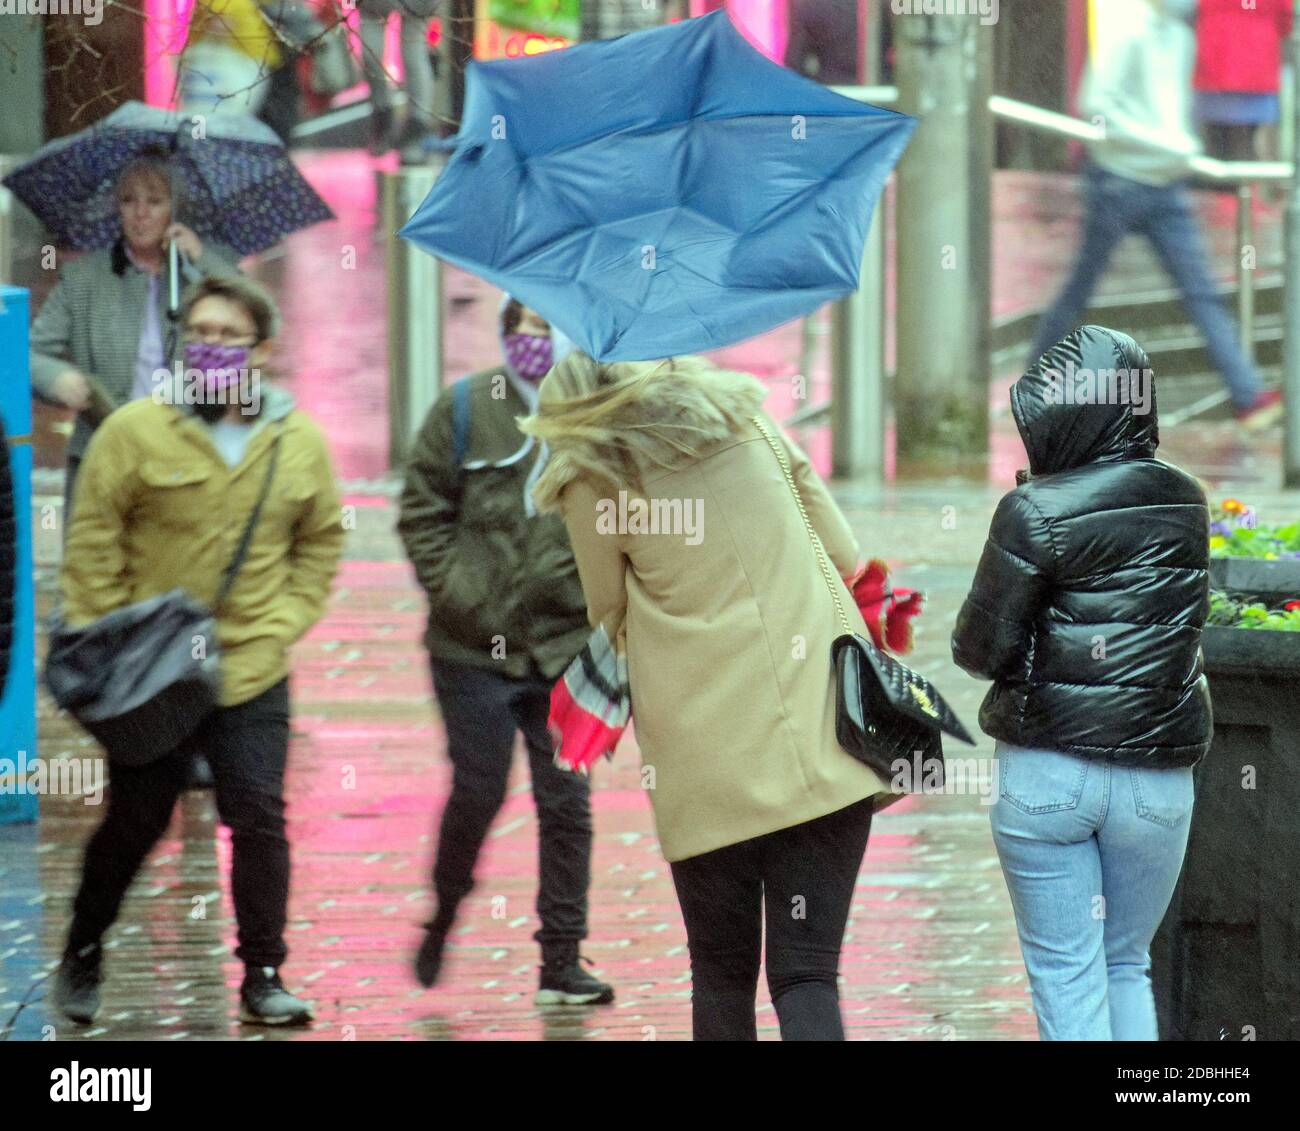 Glasgow, Scotland, UK. 17th November, 2020: UK Weather:  Rain and the threat of tier 4 added to the misery of locals as umbrellas and face masks were the hallmarks of the misery. Credit: Gerard Ferry/Alamy Live News Stock Photo